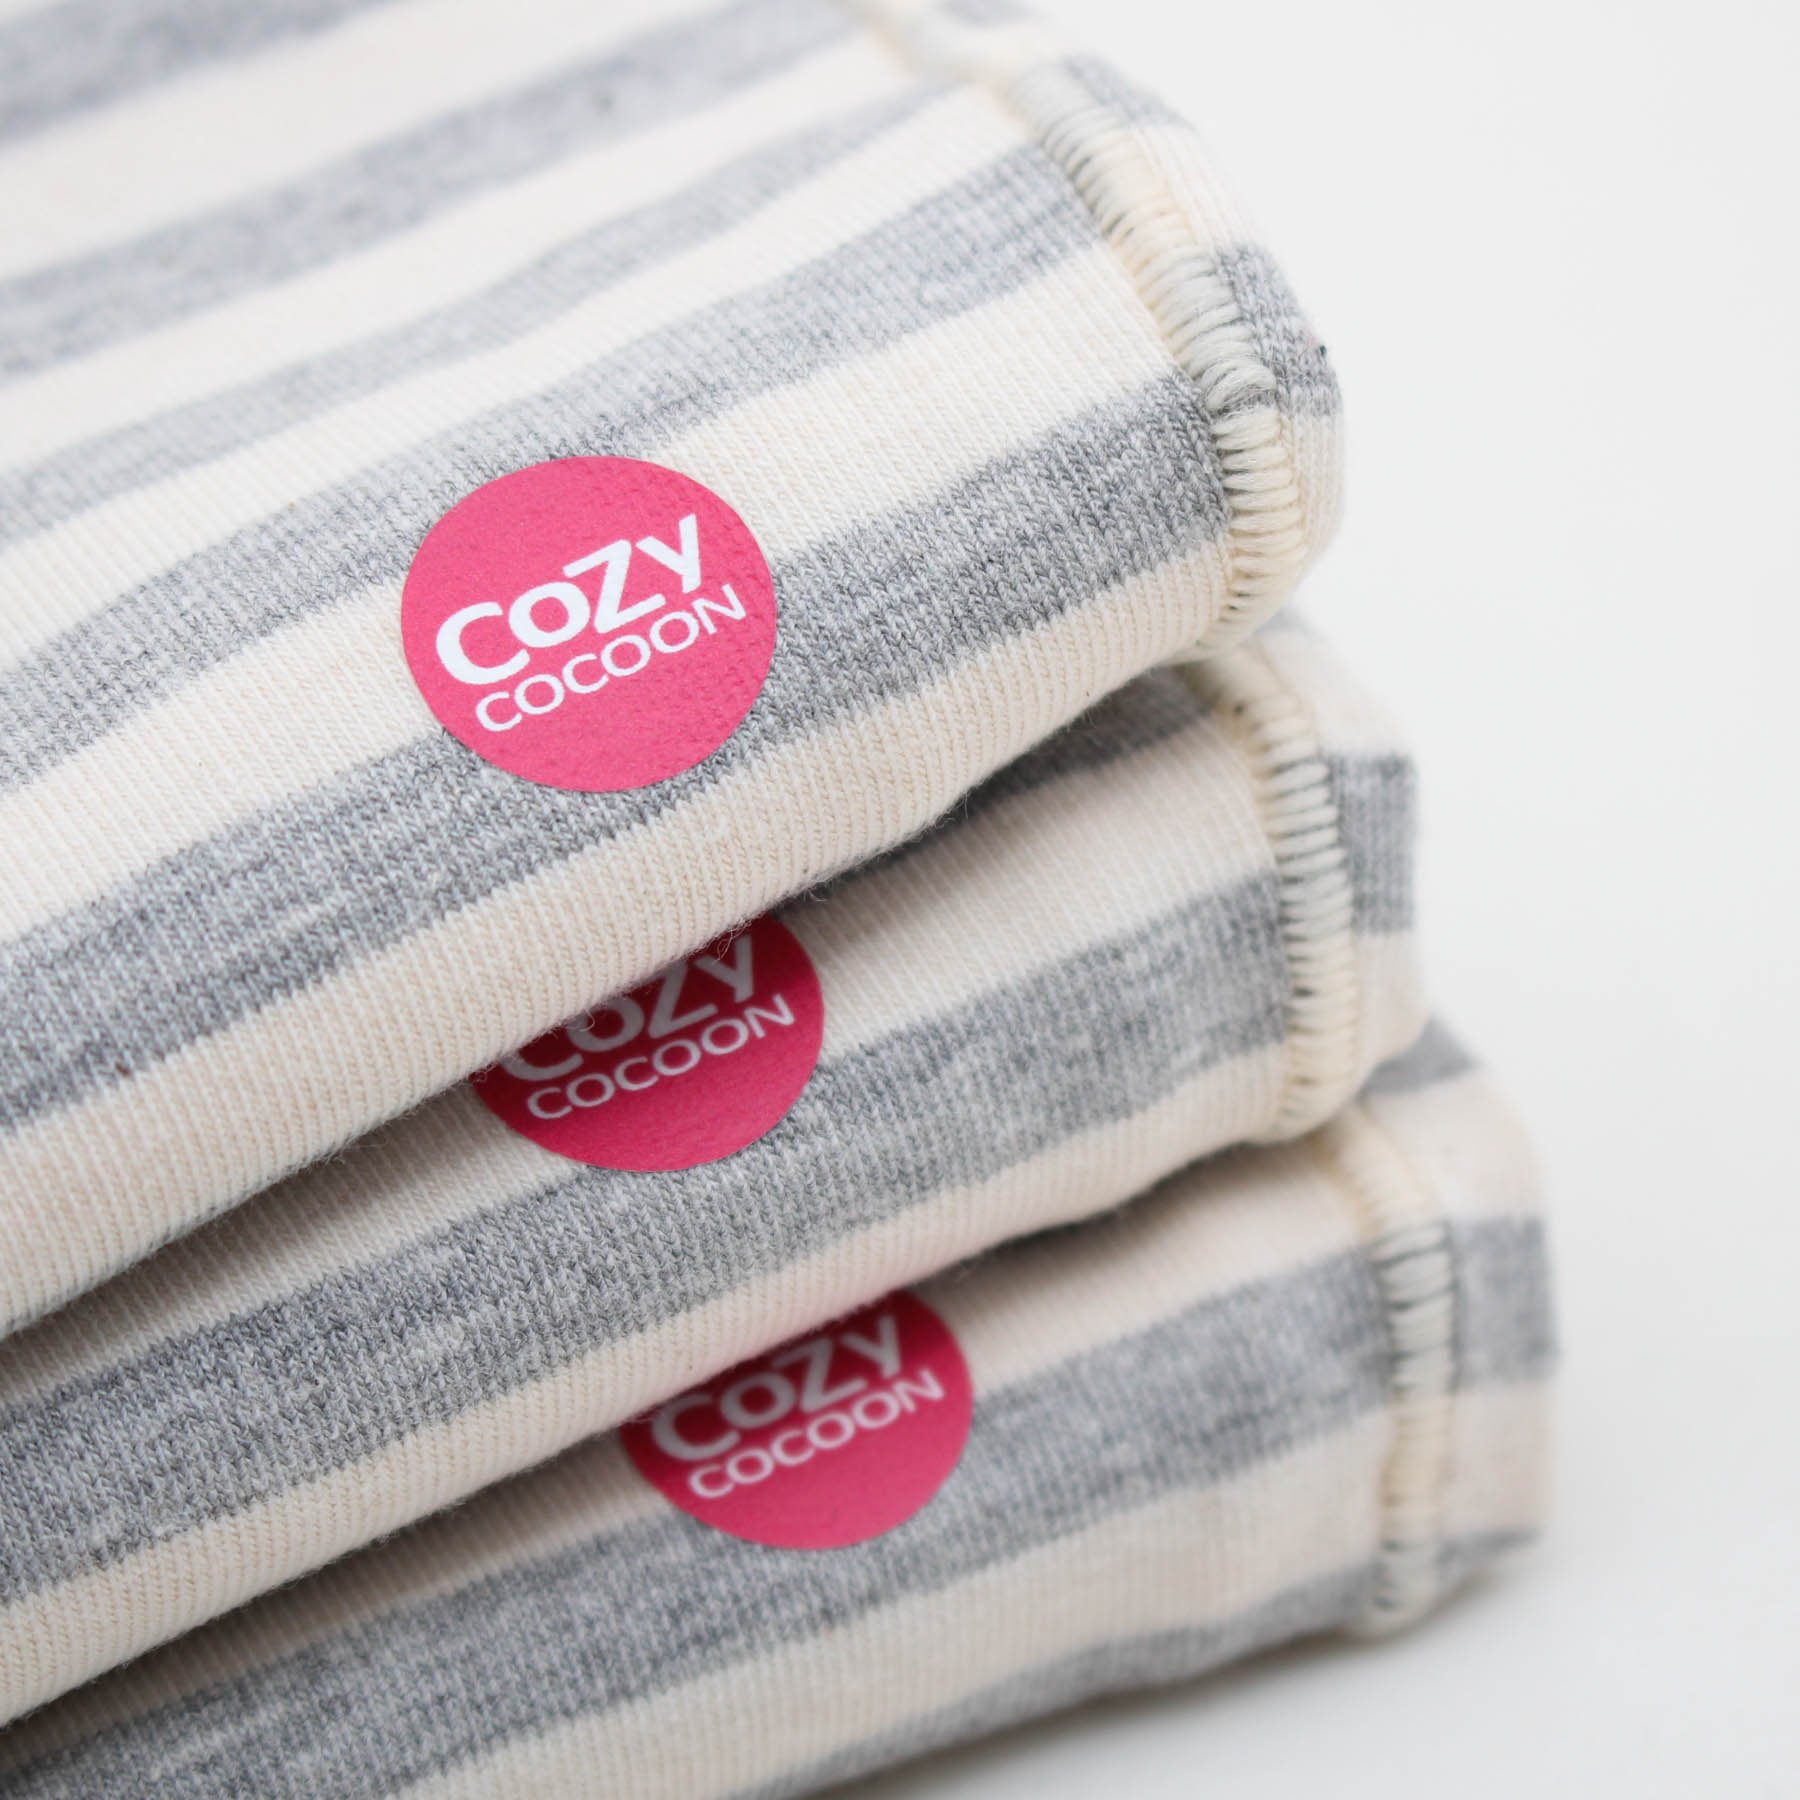 Cozy Cocoon Baby Cocoon Swaddle and Matching Hat, Gray Stripes, 0-3 months by Cozy Cocoon (Image #7)